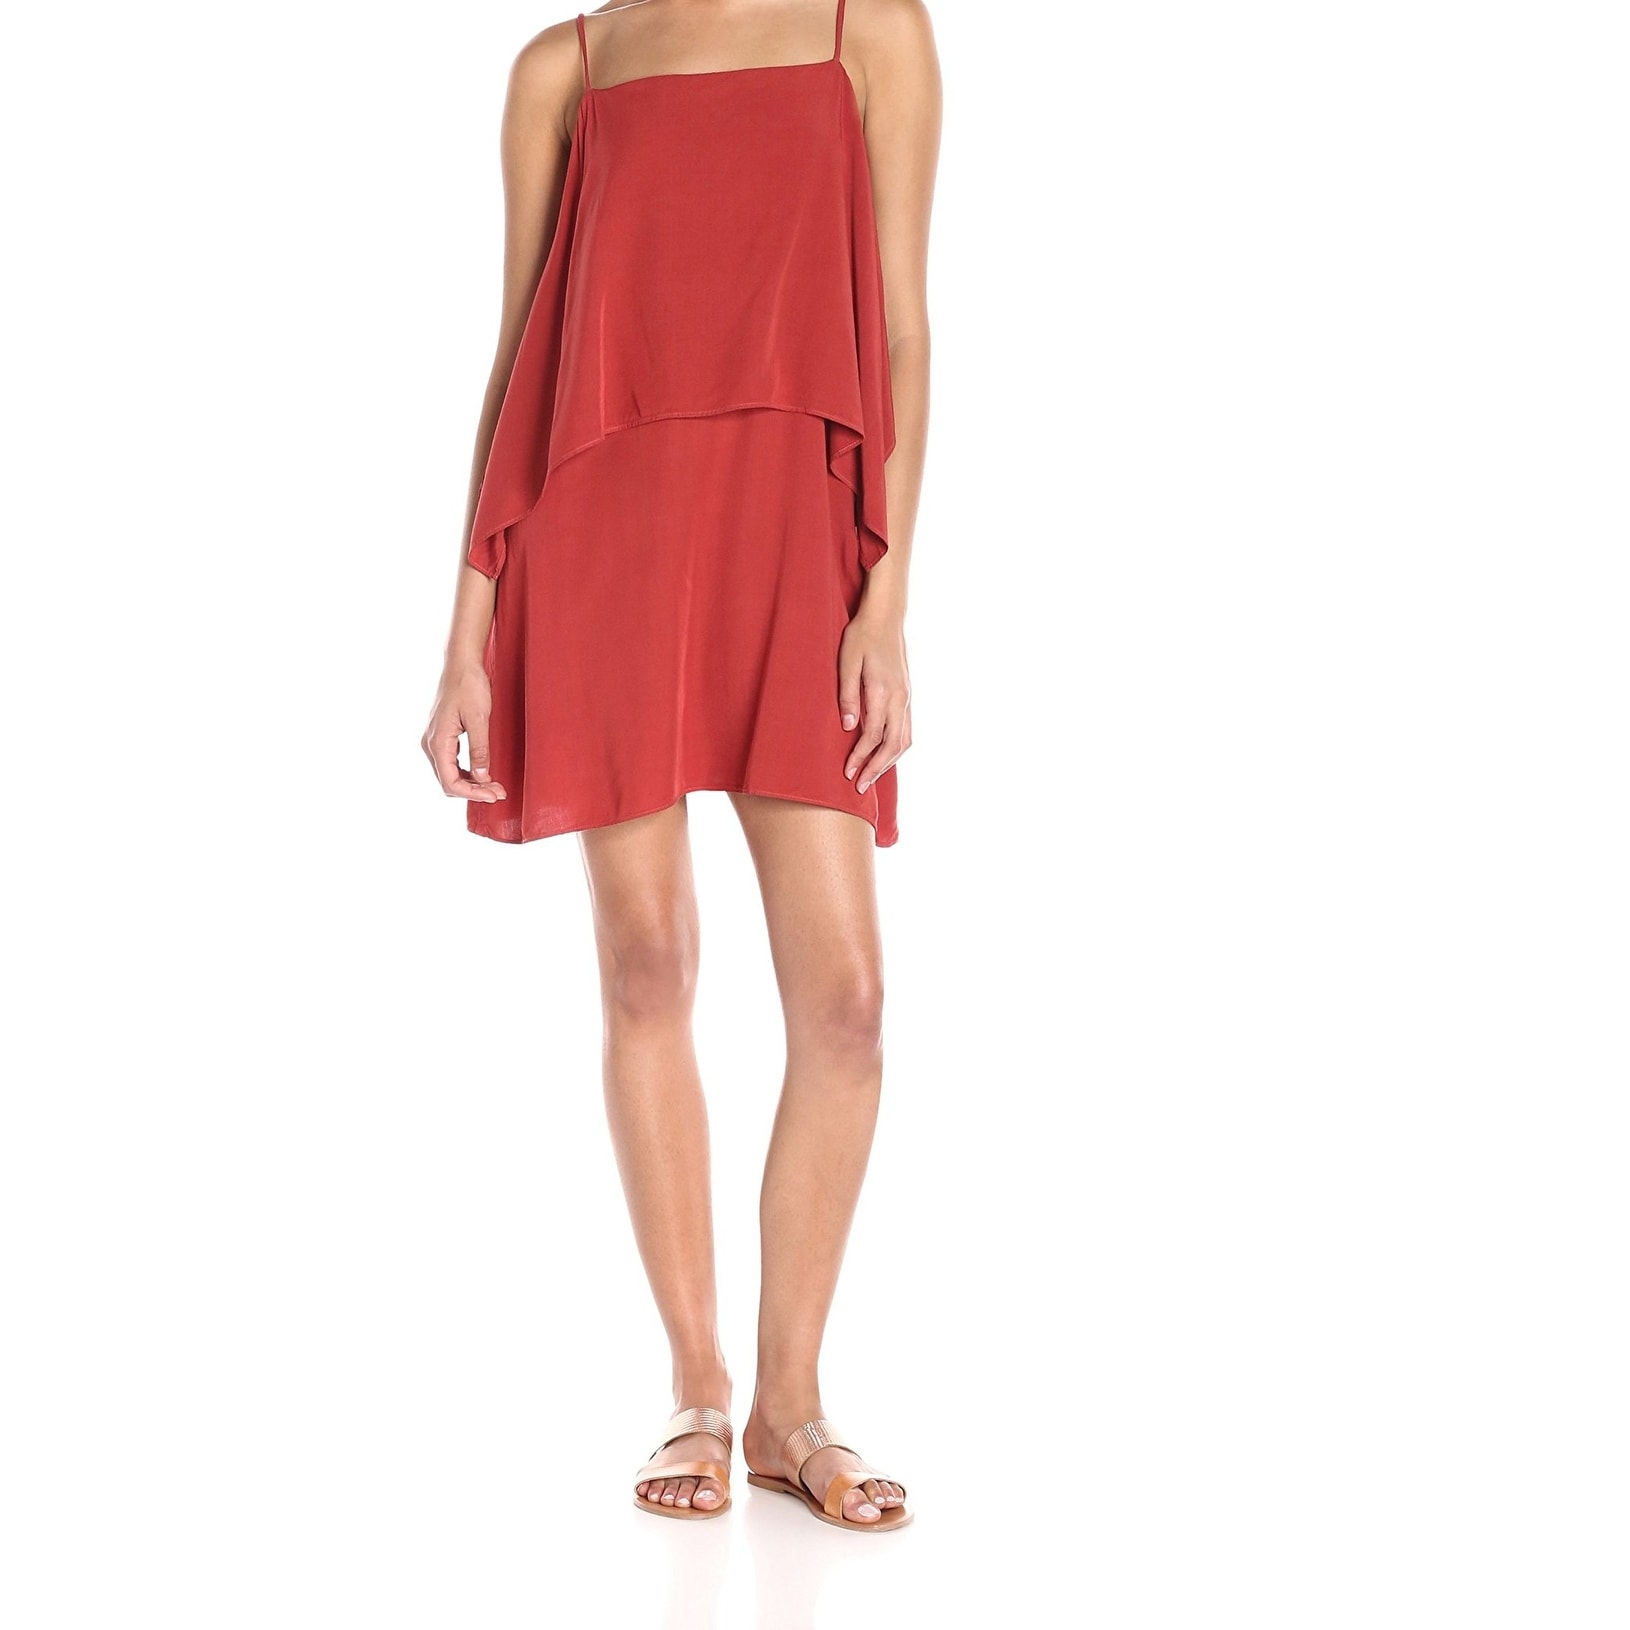 3a45b58208 Shop Splendid NEW Brick Red Women's Size Large L Layer A-Line Tank Dress -  Free Shipping Today - Overstock - 20730469